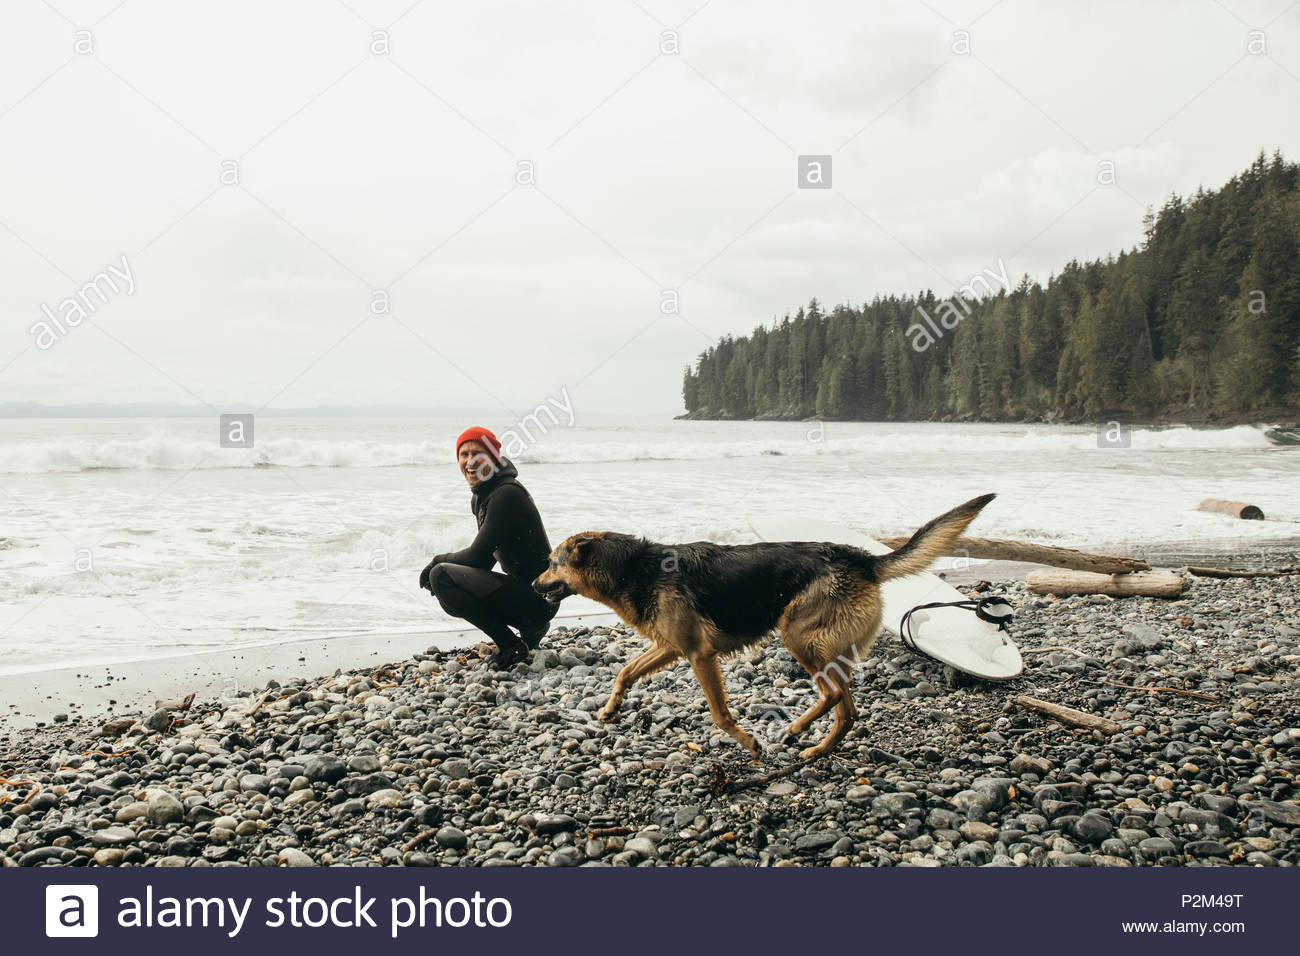 Male surfer with dog on rugged beach - Stock Image